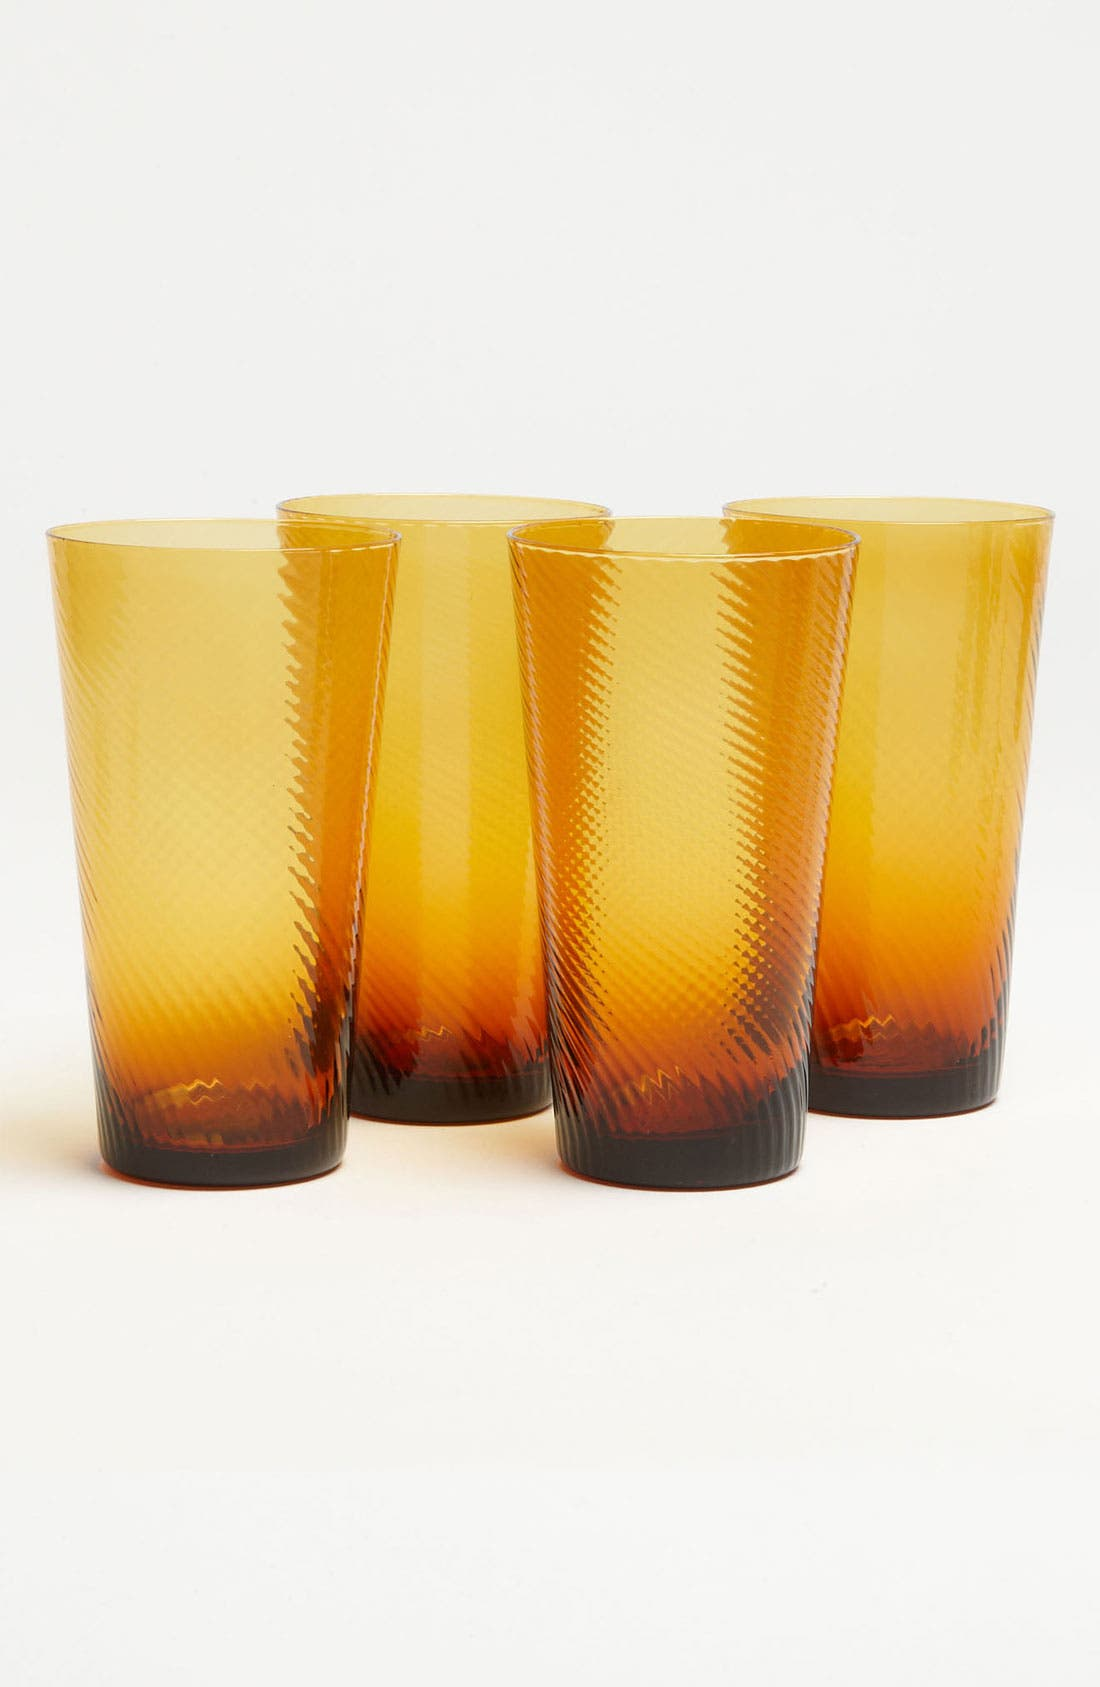 Alternate Image 1 Selected - 'Roma' High Ball Glasses (Set of 4)